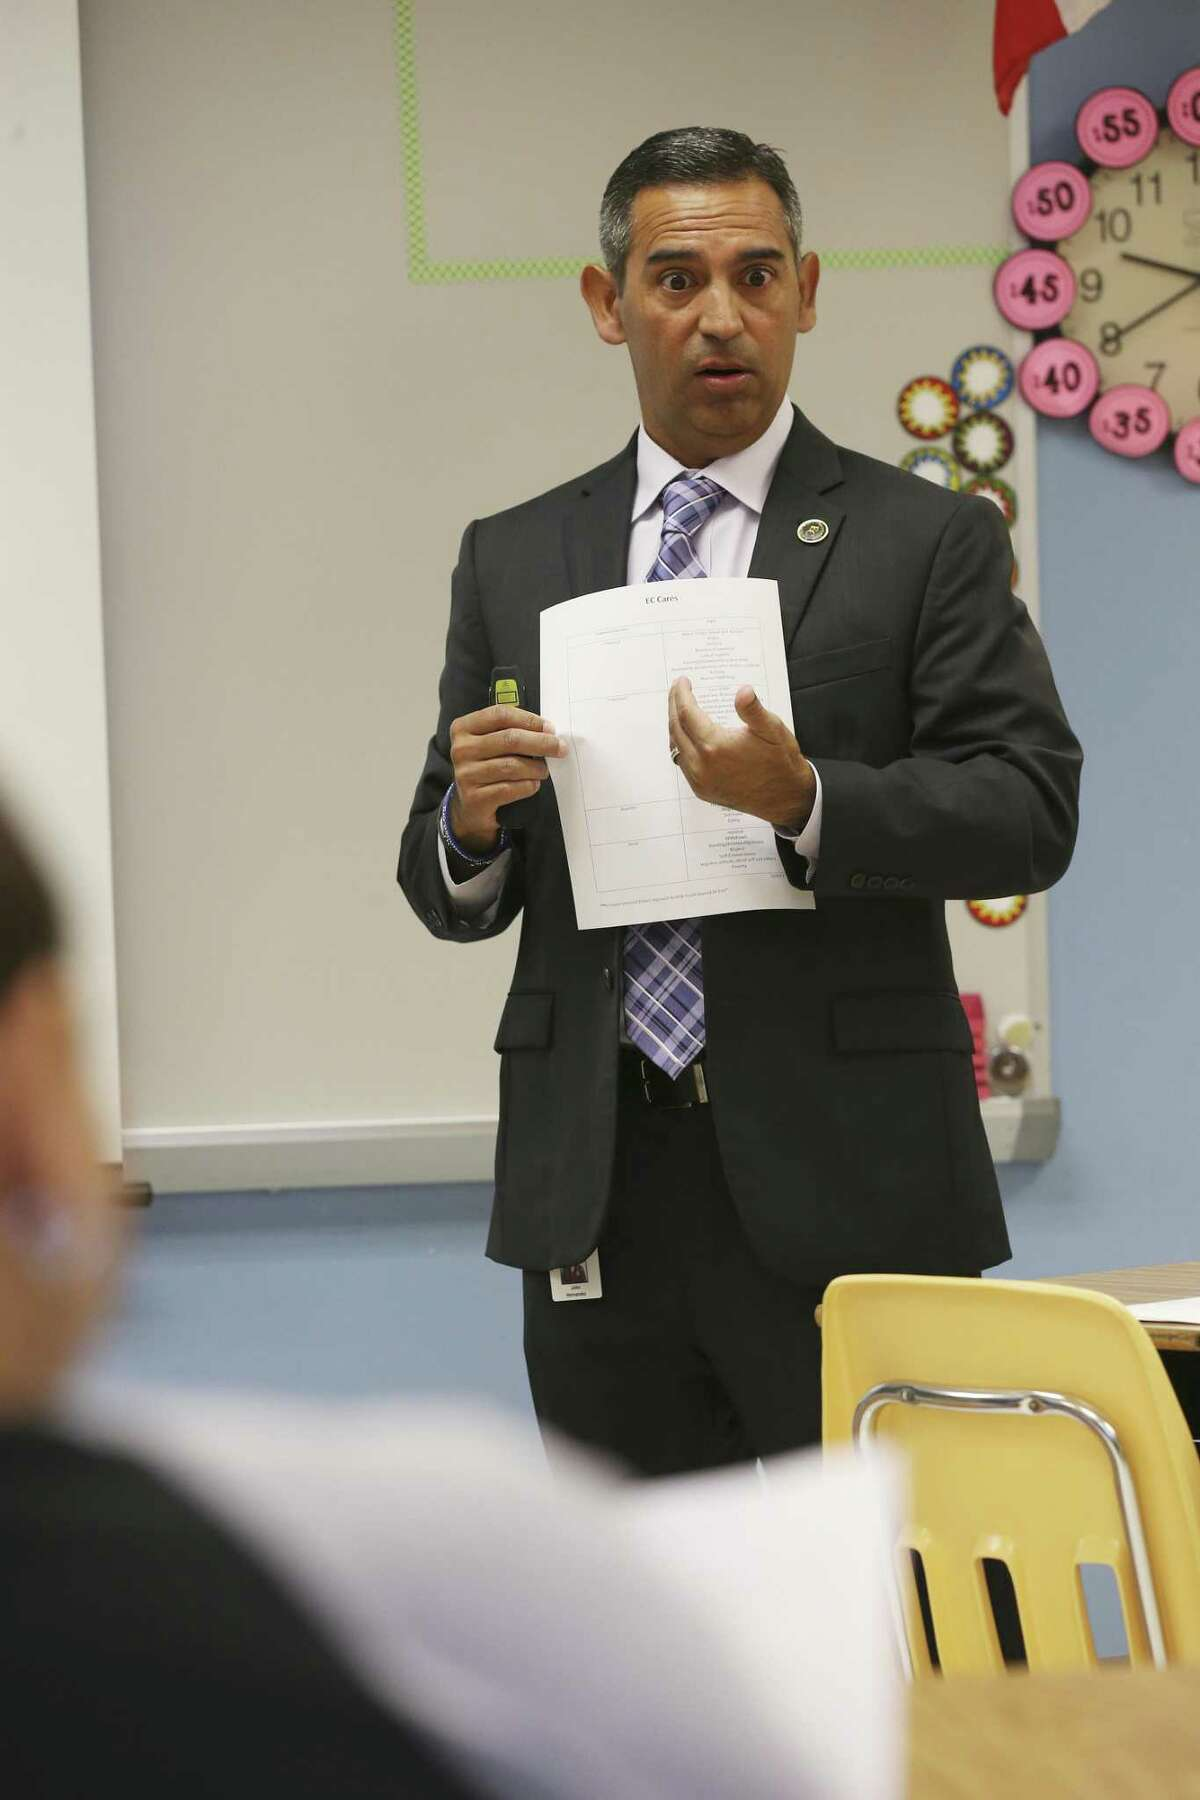 East Central Independent School District Director of Student Service John Hernandez conducts an EC Cares presentation for staff at Oak Crest Elementary School, Thursday, August 23, 2018. Hernandez developed the